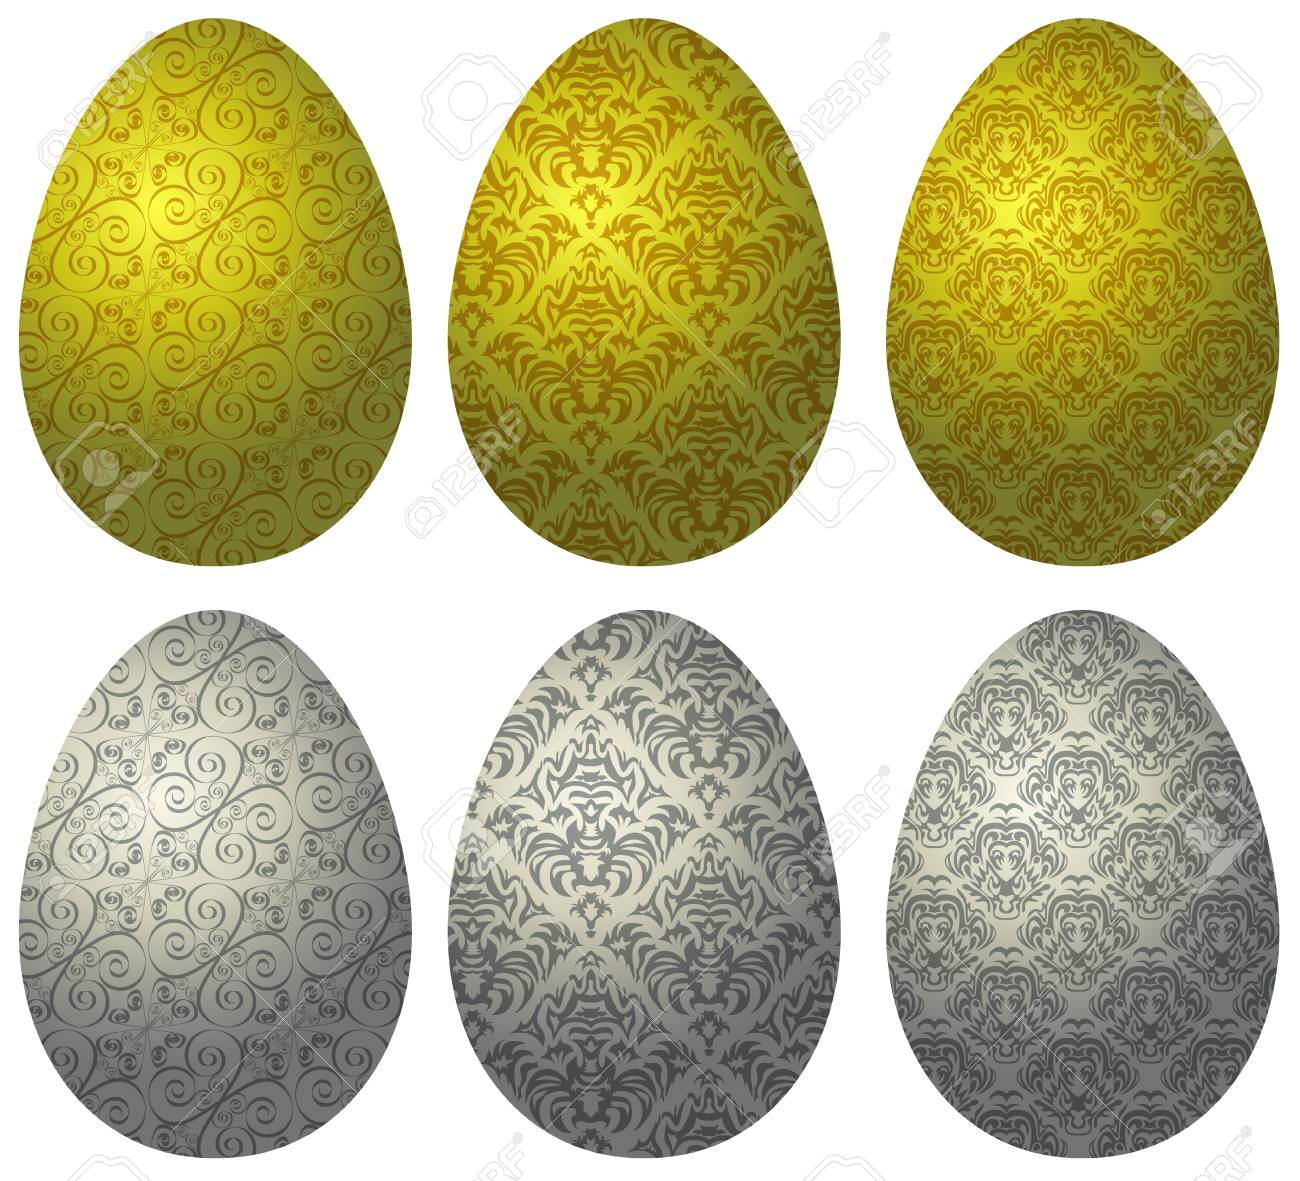 Set of gold and silver Easter eggs with pattern on white background Stock Vector - 18380935